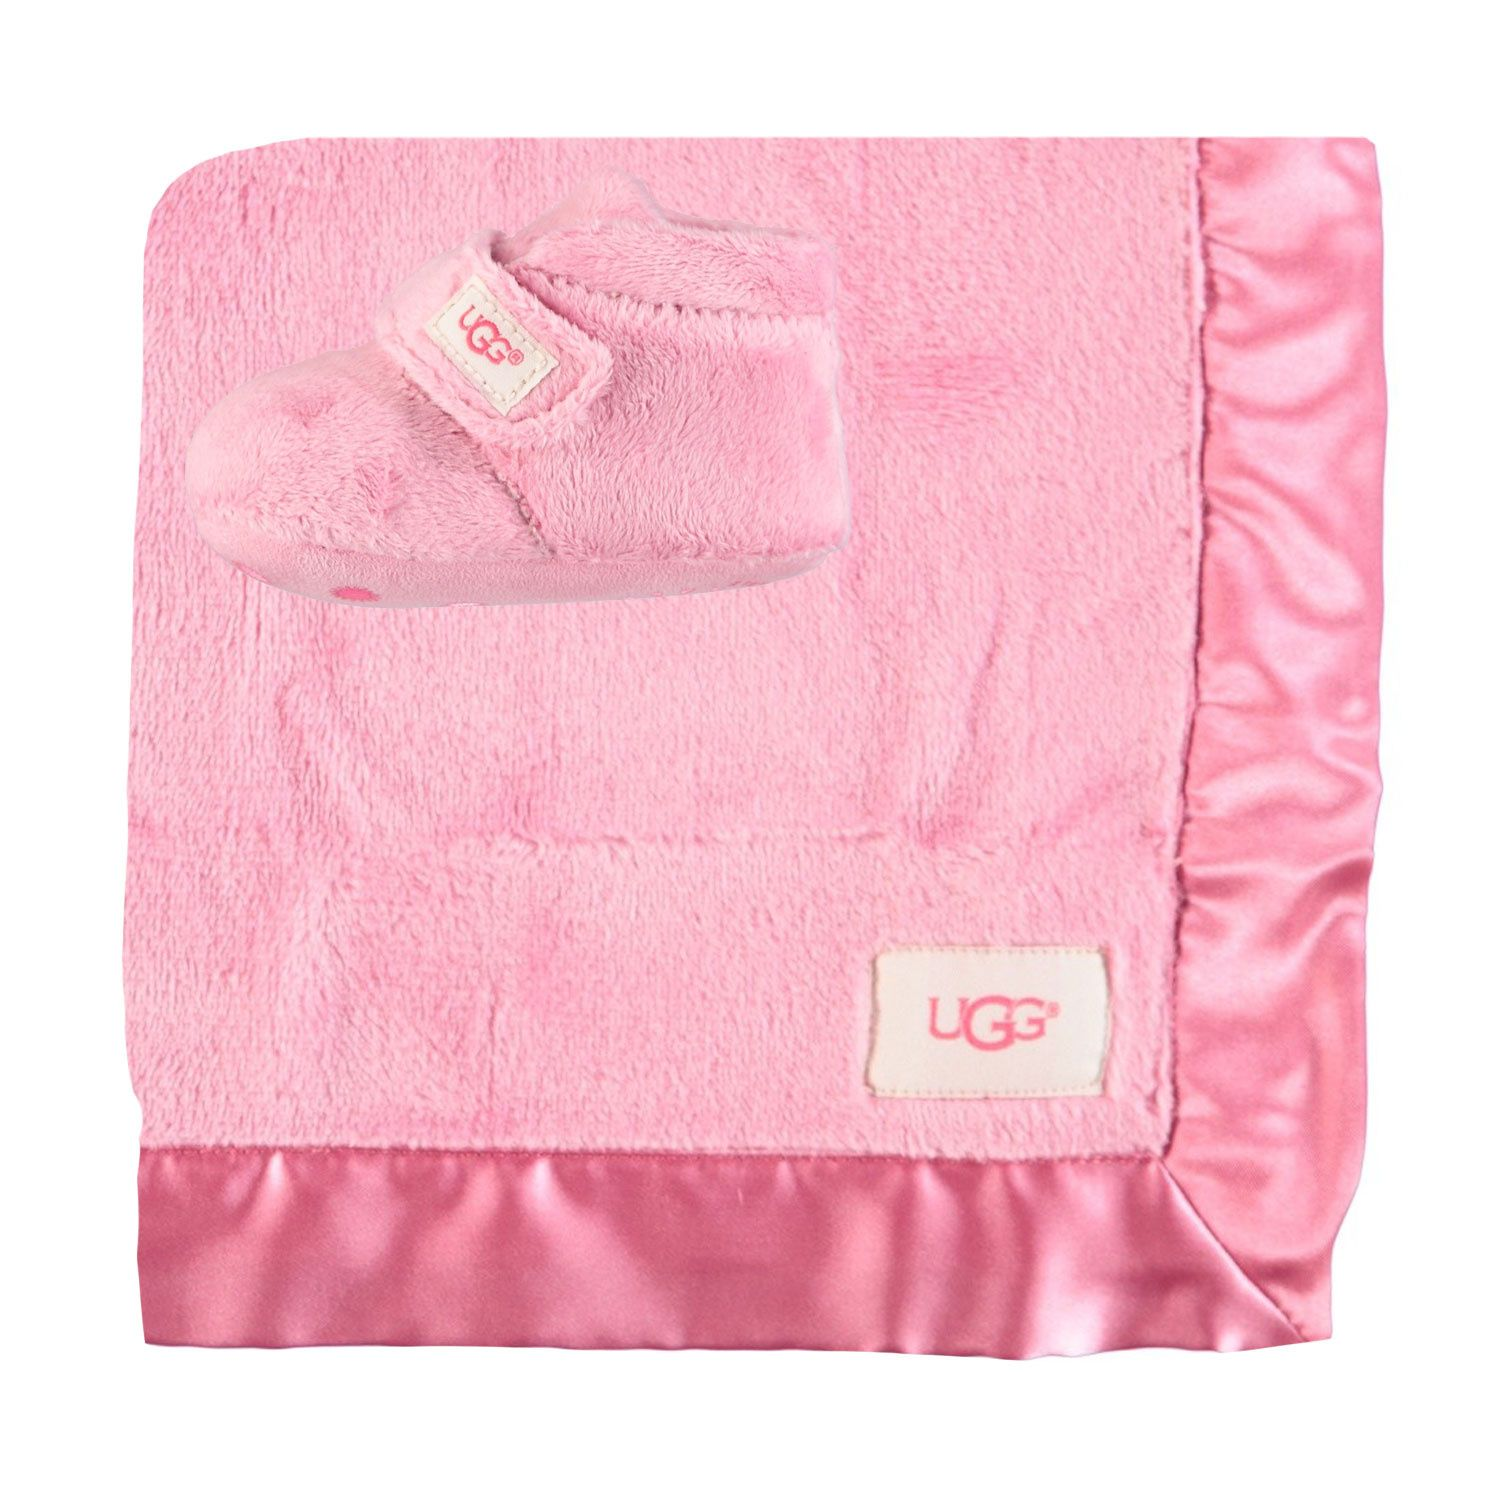 Picture of Ugg 1094823I baby slippers pink